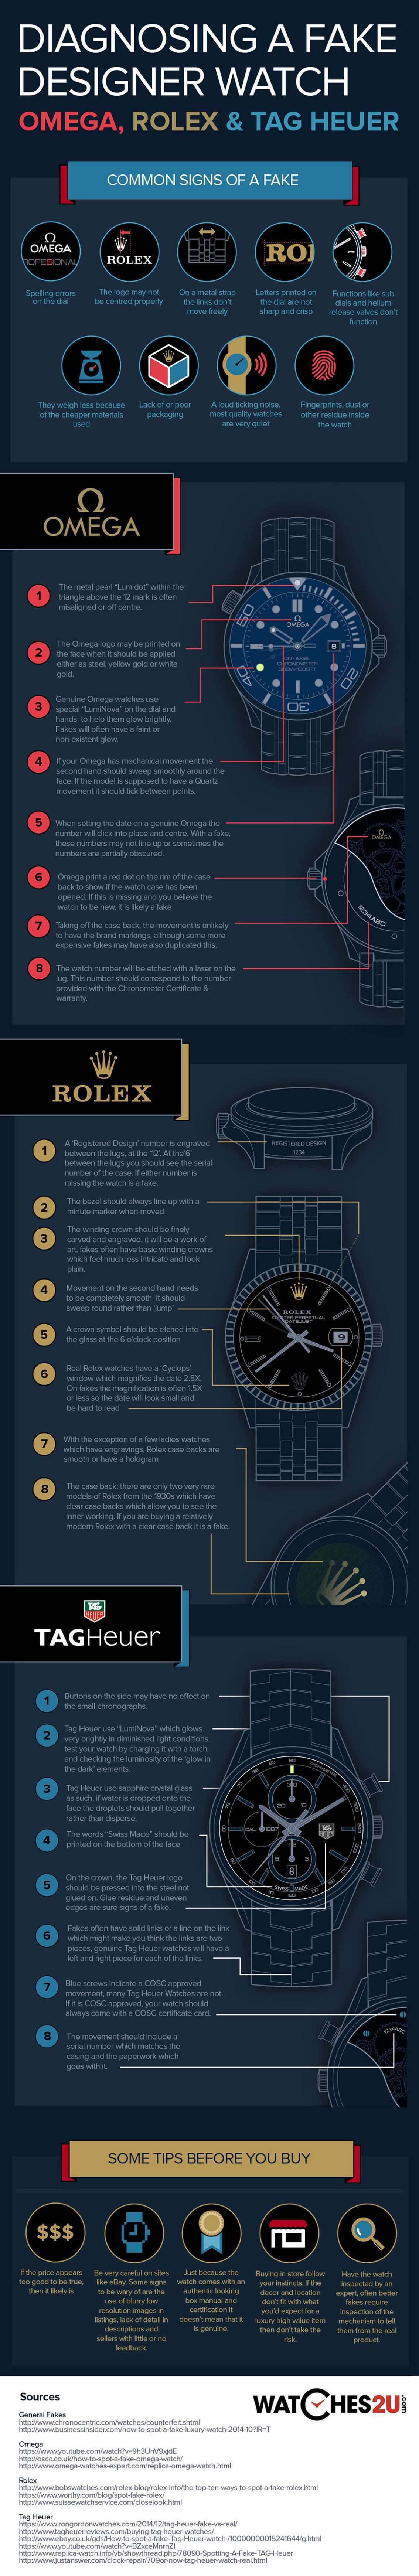 How to Tell if a Rolex Omega and Tag Heuer Watch is Fake Infographic